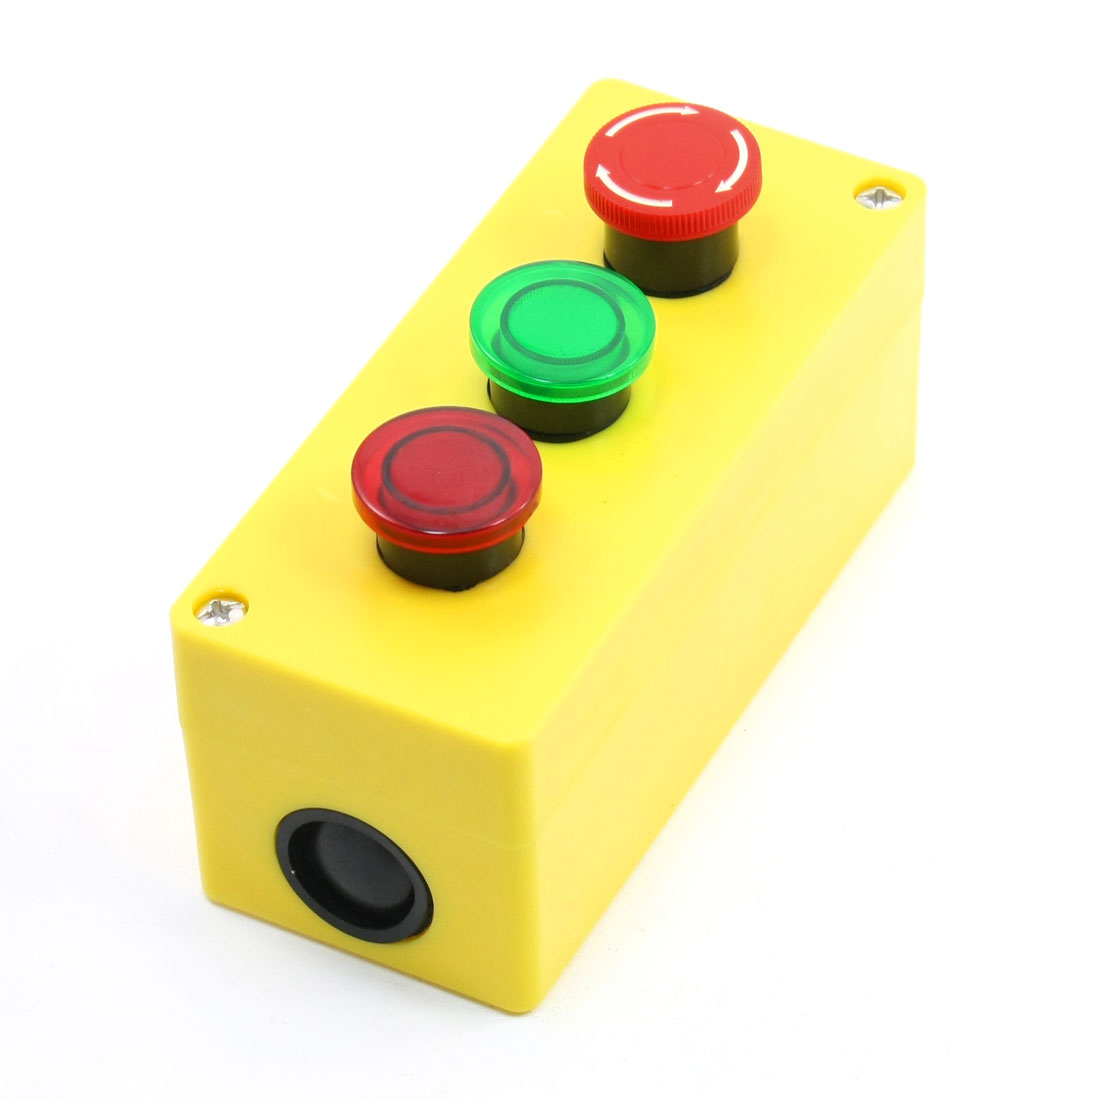 5A 250VAC Latching Emergency Stop Momentary Red Green Button Control Station